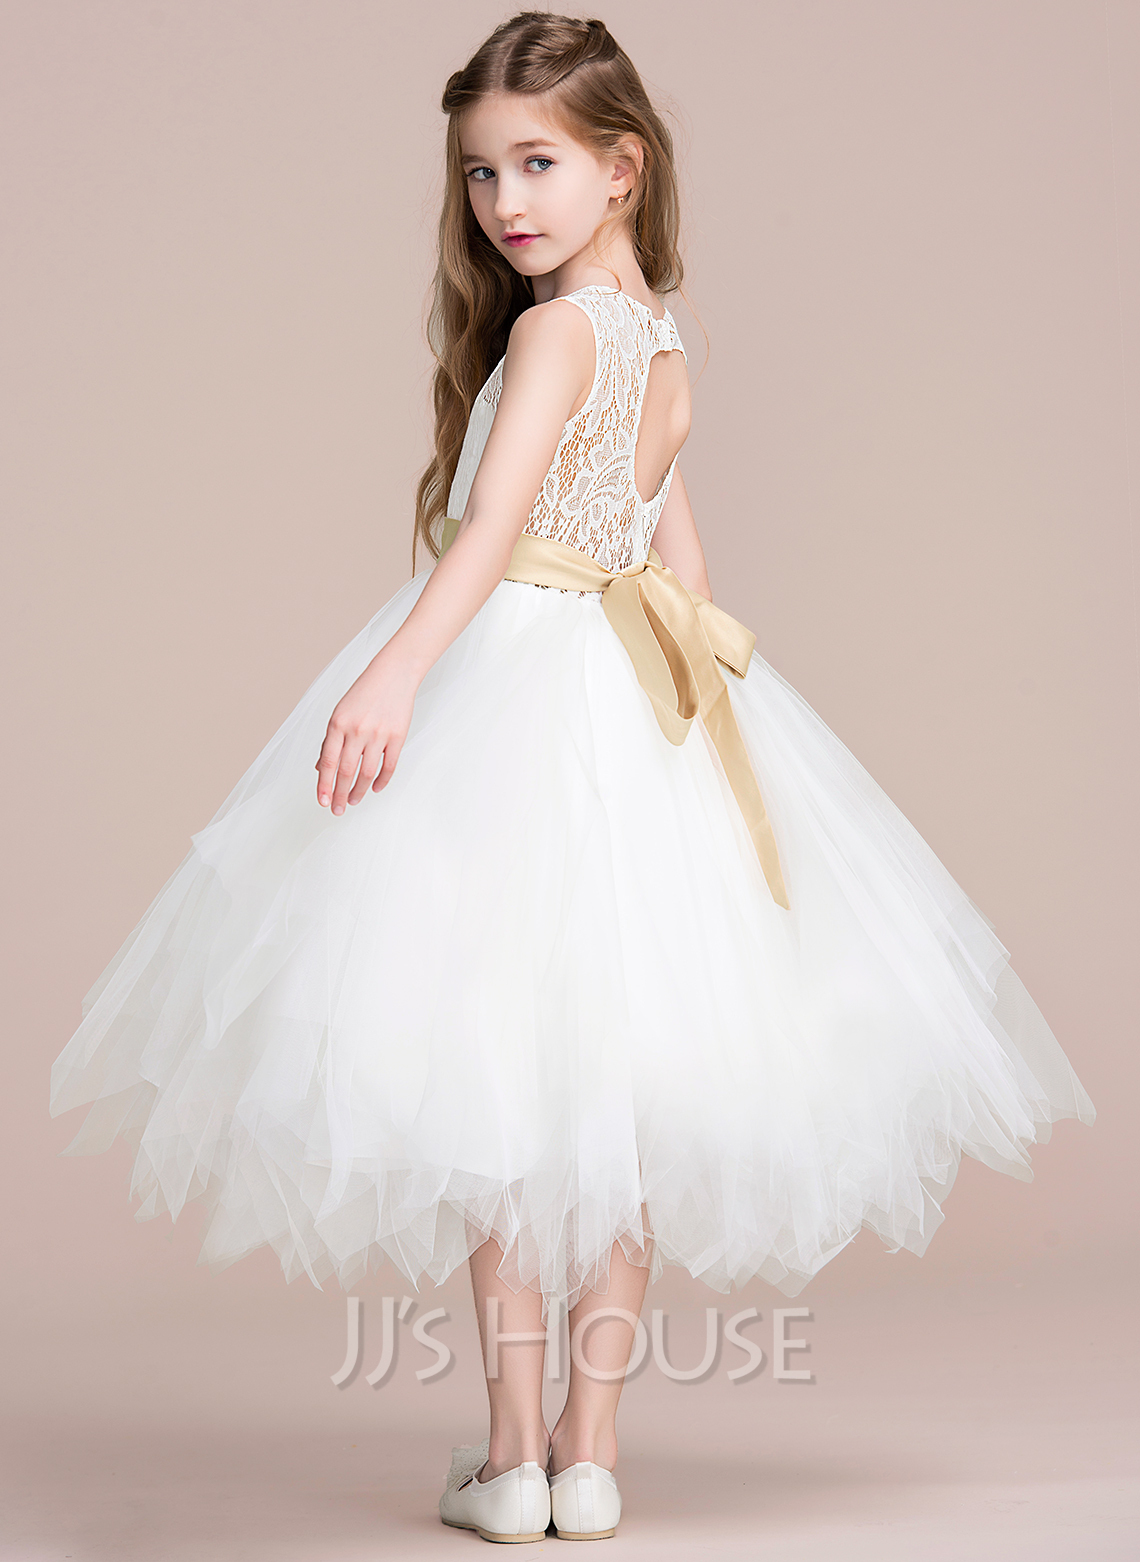 A-Line/Princess Tea-length Flower Girl Dress